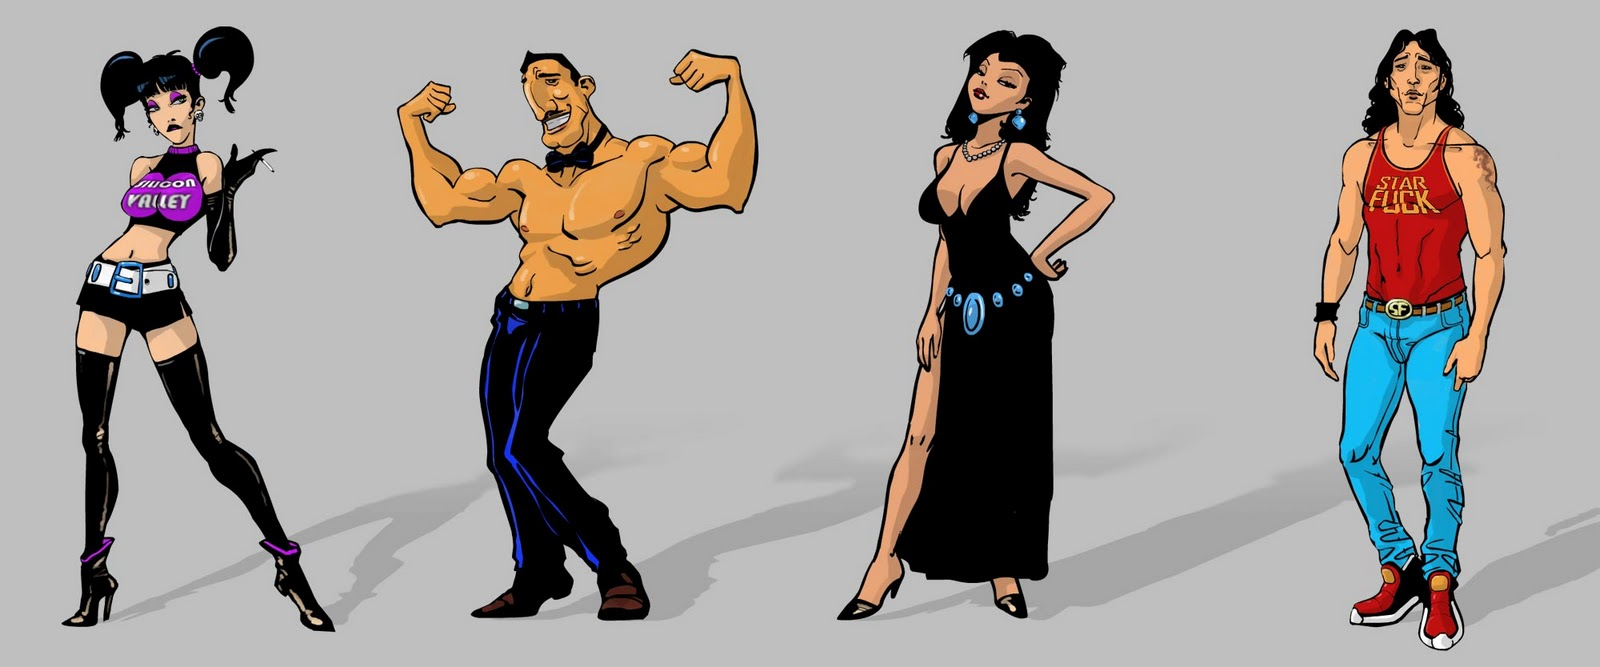 XXX game. New funny characters for a sexy game :D